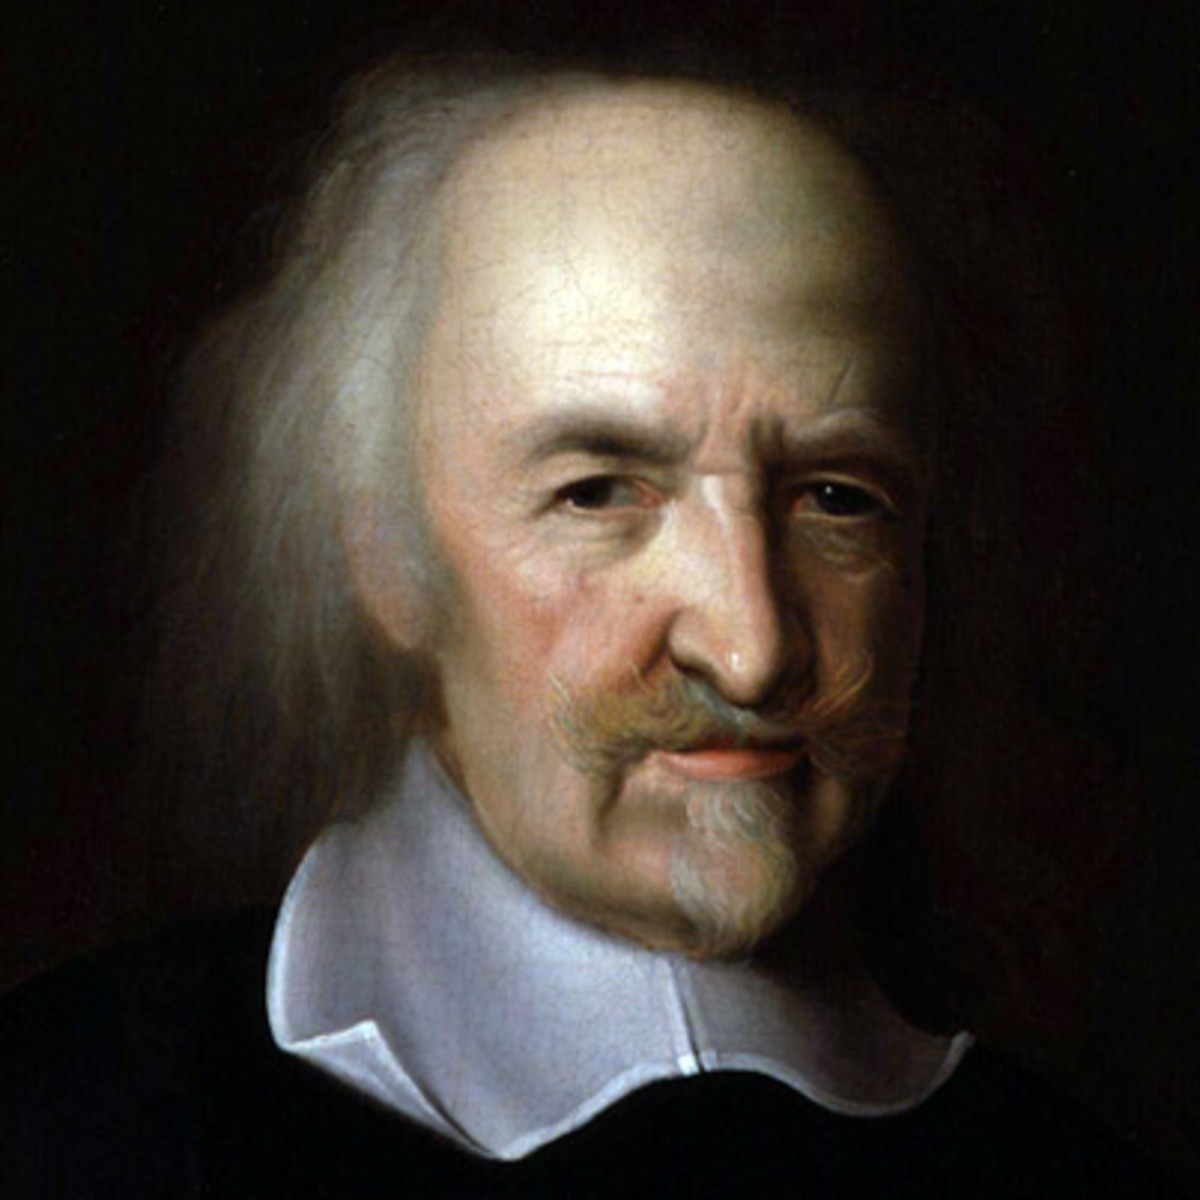 thomas hobbes academic philosopher political scientist thomas hobbes academic philosopher political scientist journalist scientist historian com